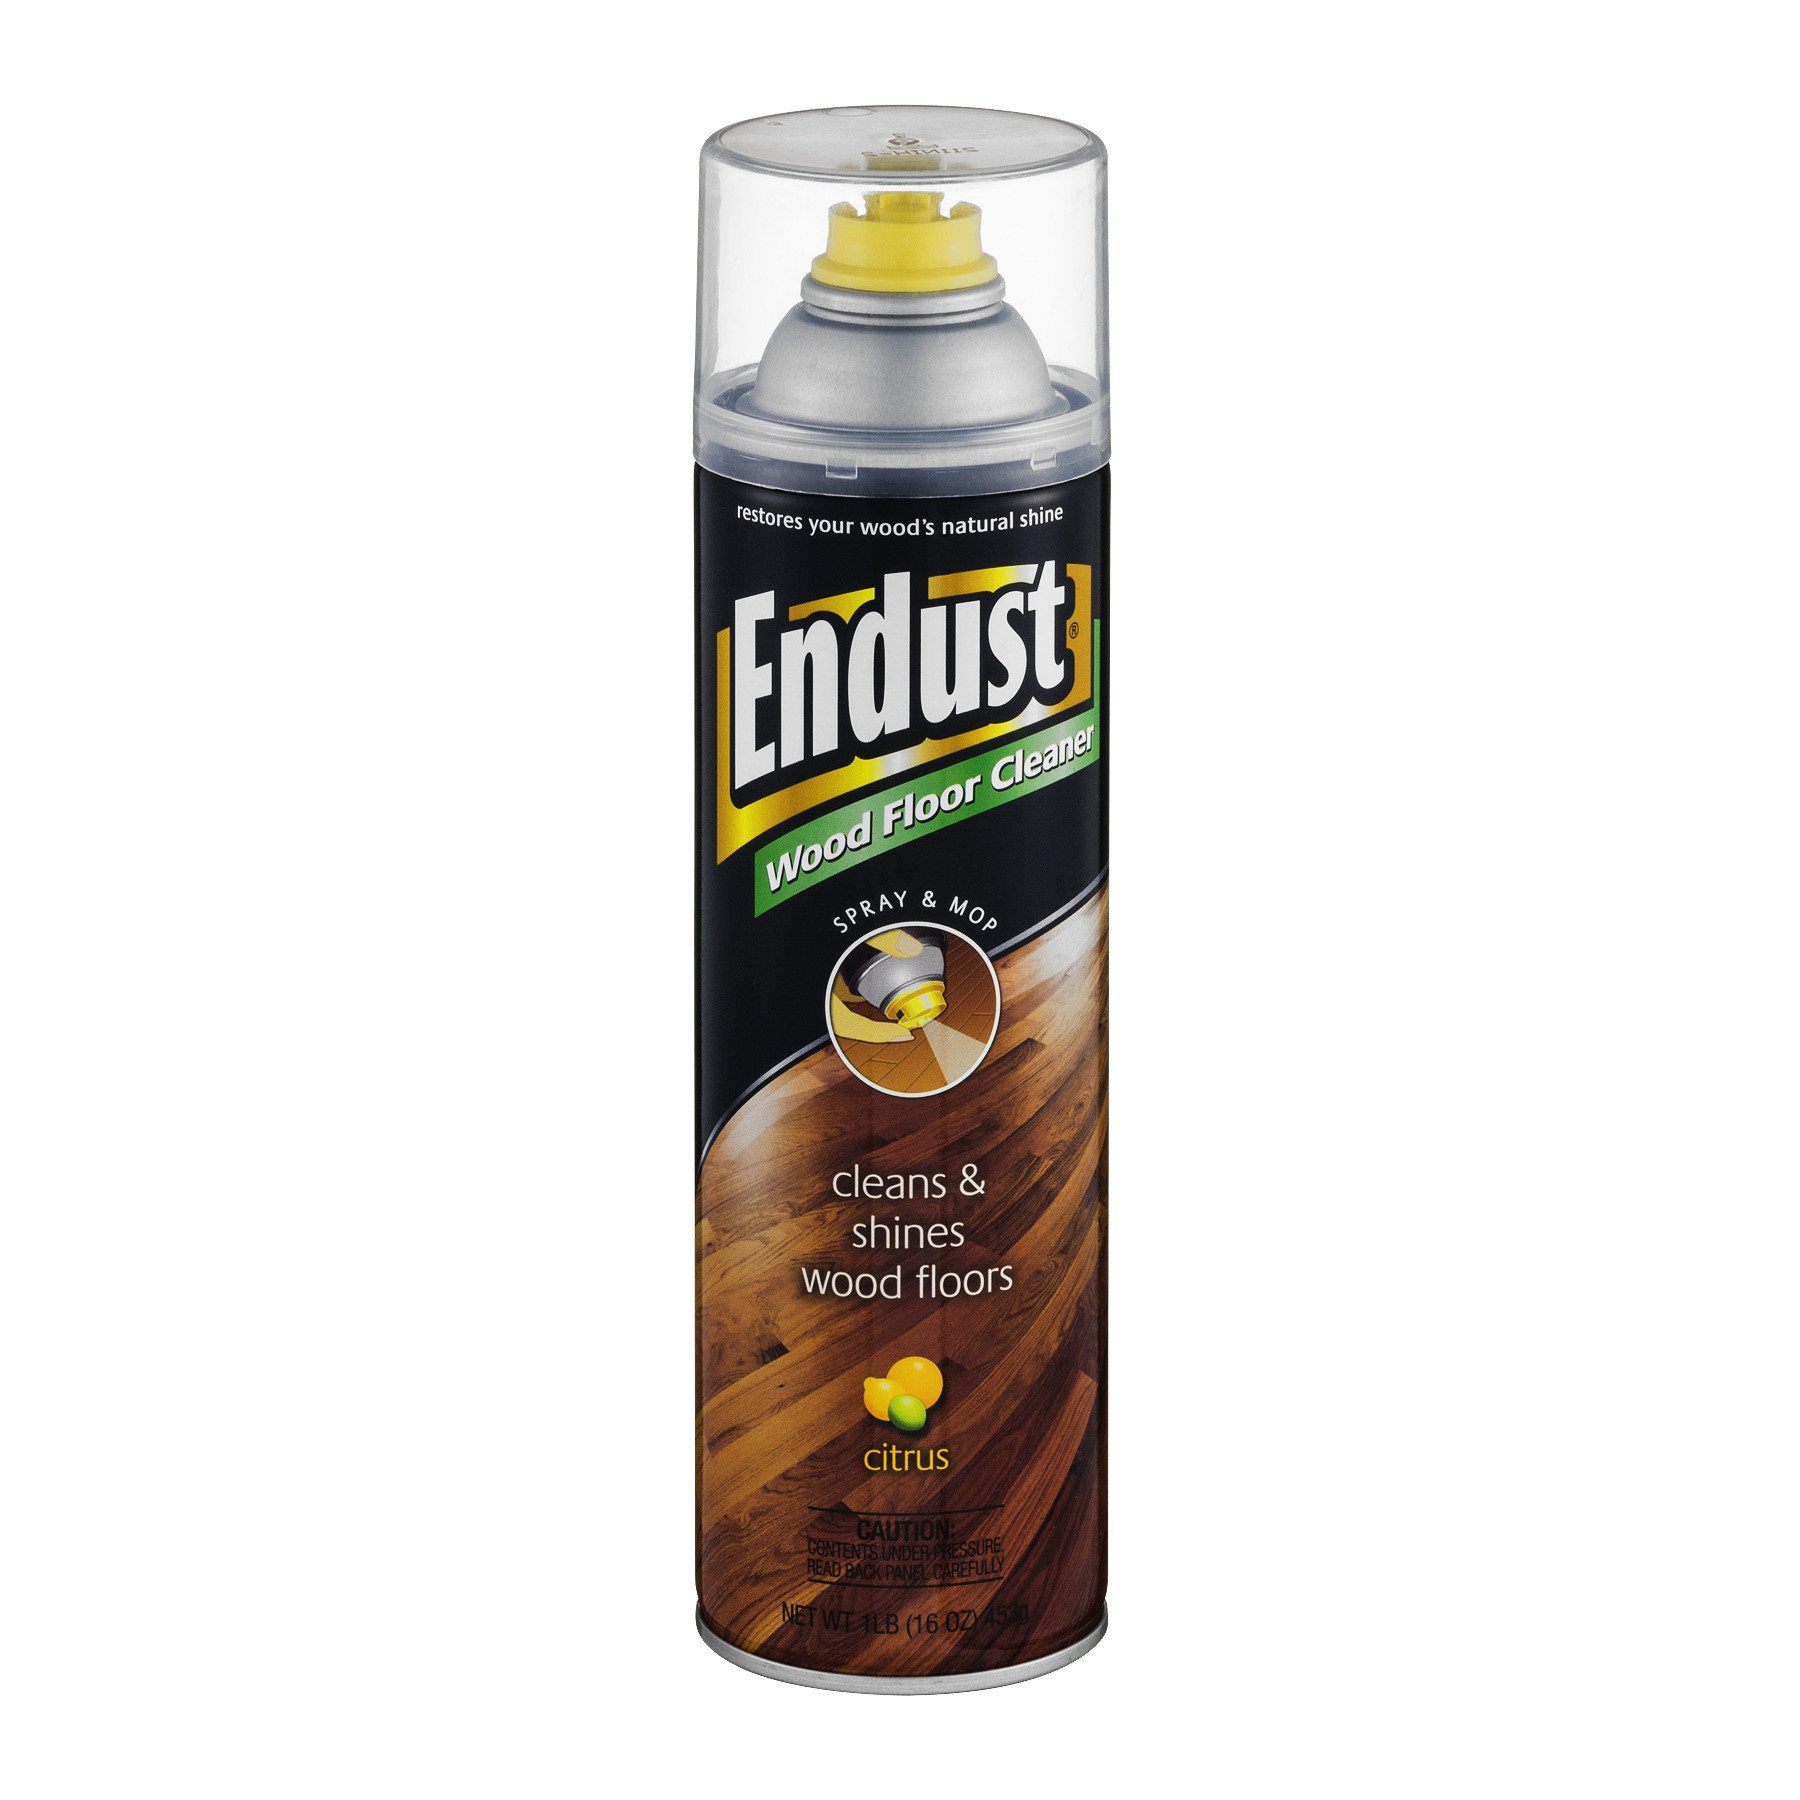 Professional Hardwood Floor Cleaning Of Endust Citrus Wood Floor Cleaner 16 Oz Walmart Com In Aa6dd099 8e1f 4f86 8b72 47c862ebb1d1 1 280f2bccd593a75e5ad26f976cfd45bd